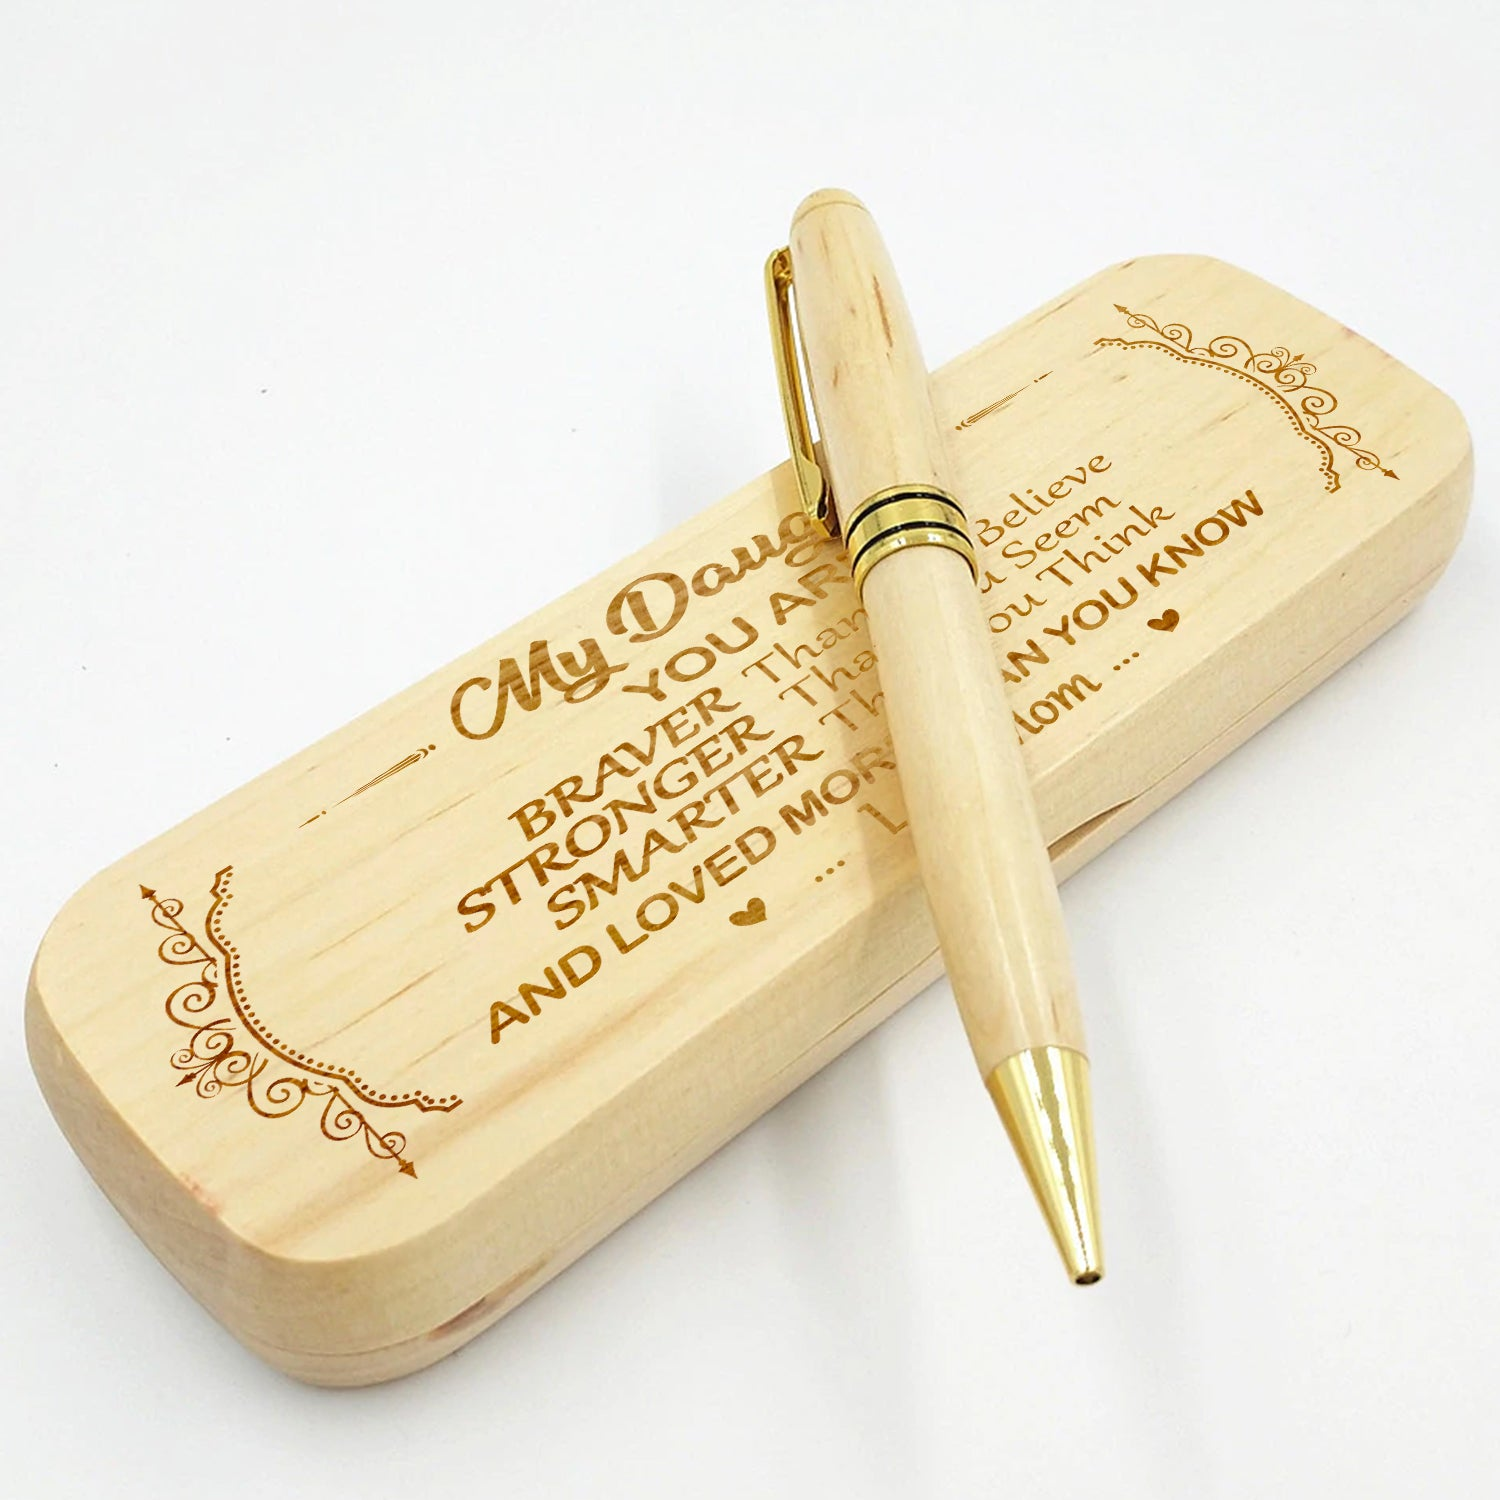 Mom to Daughter - Loved More Than You Know - Engraved Wood Pen Case